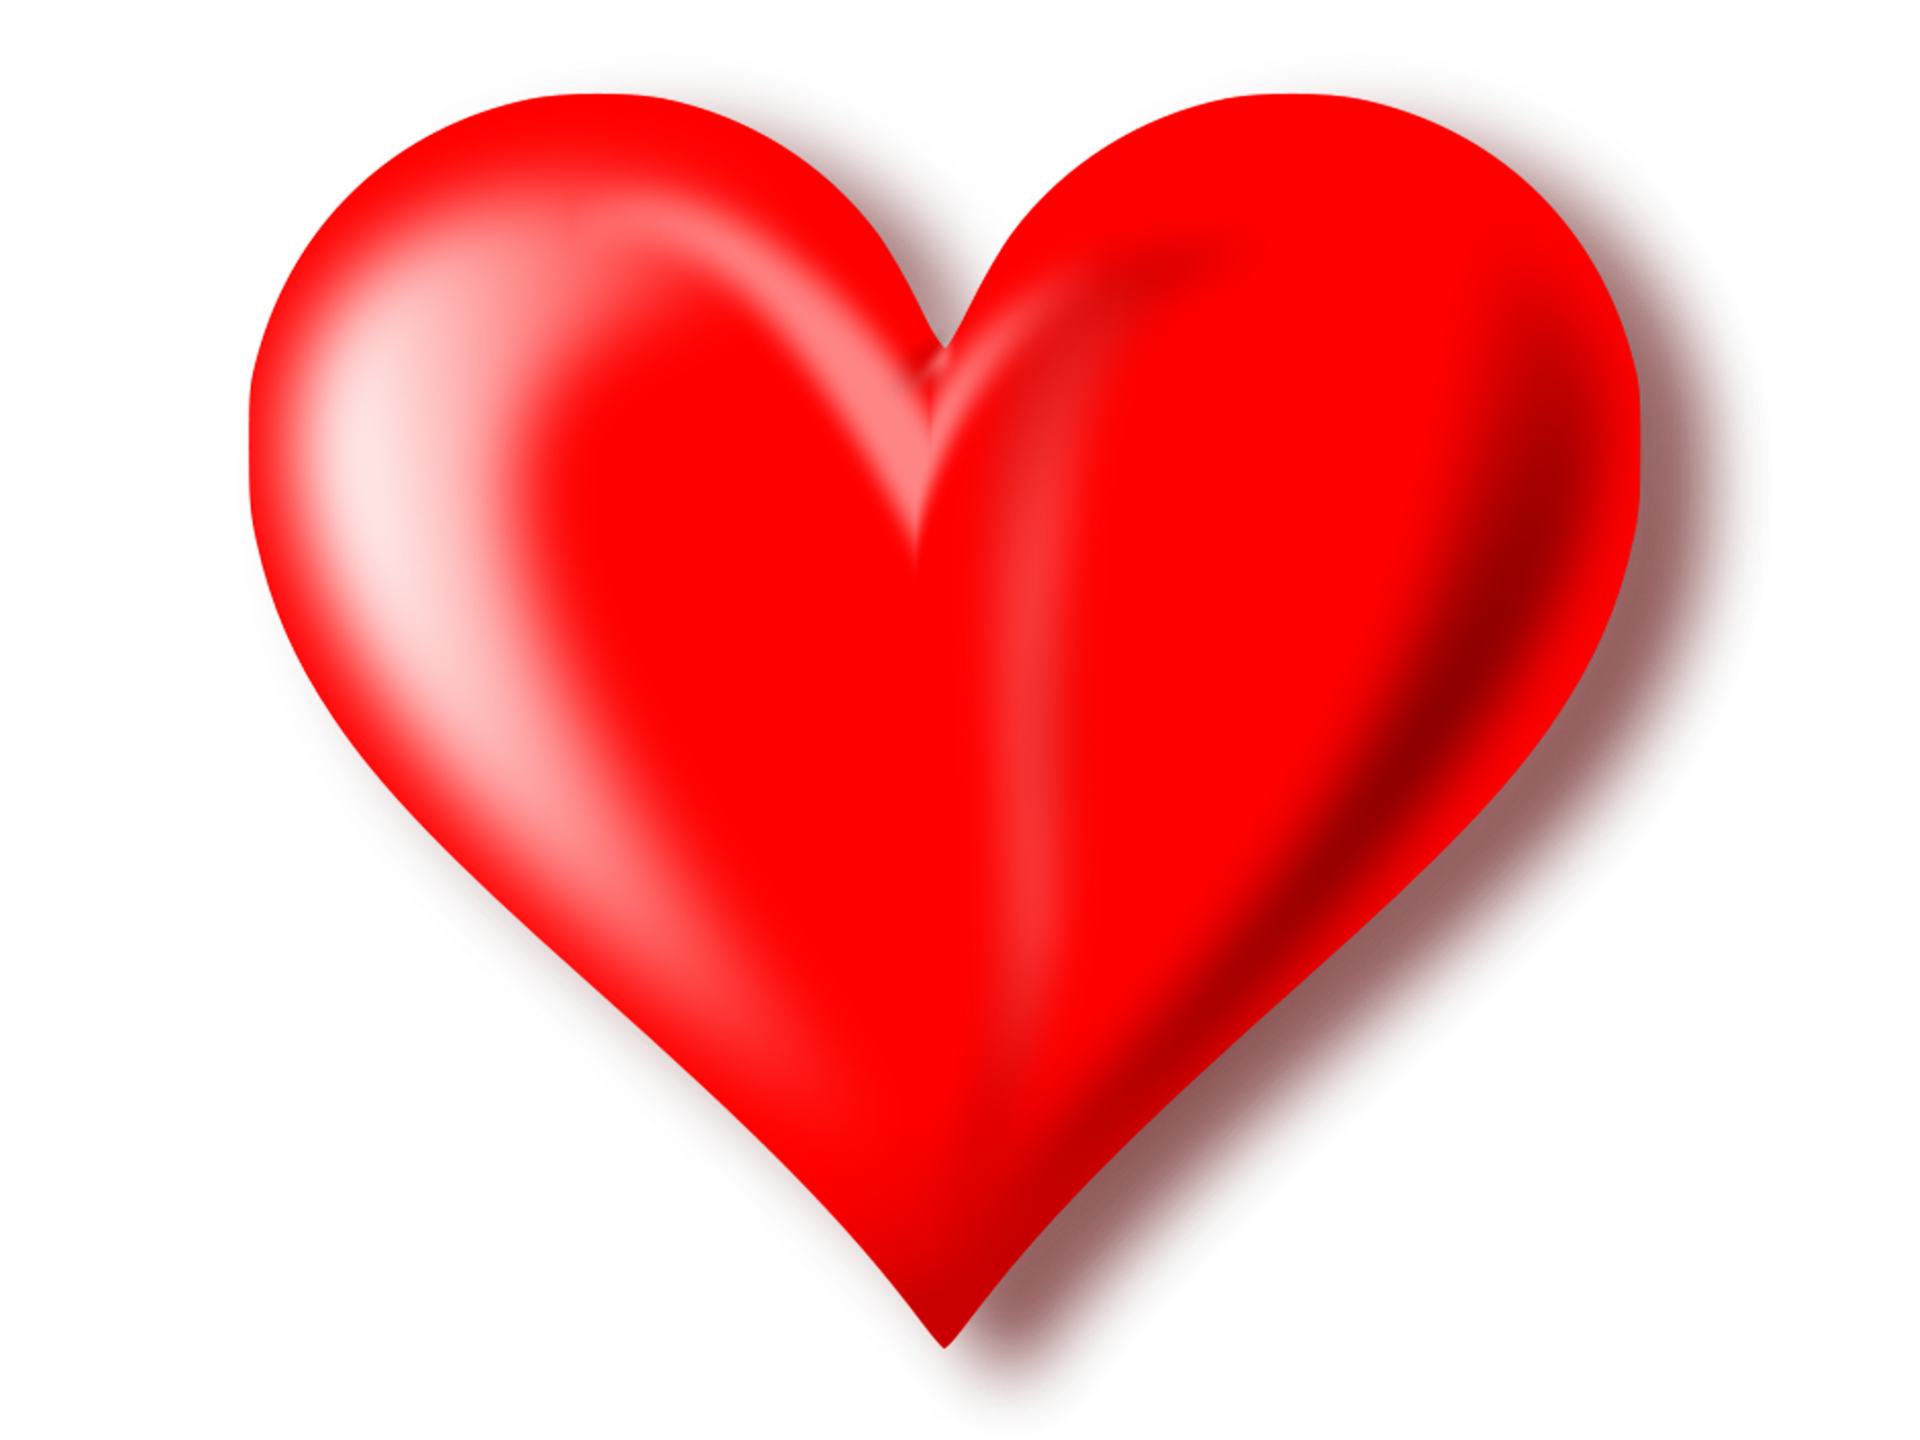 Heart PNG HD Transparent Background - 122732